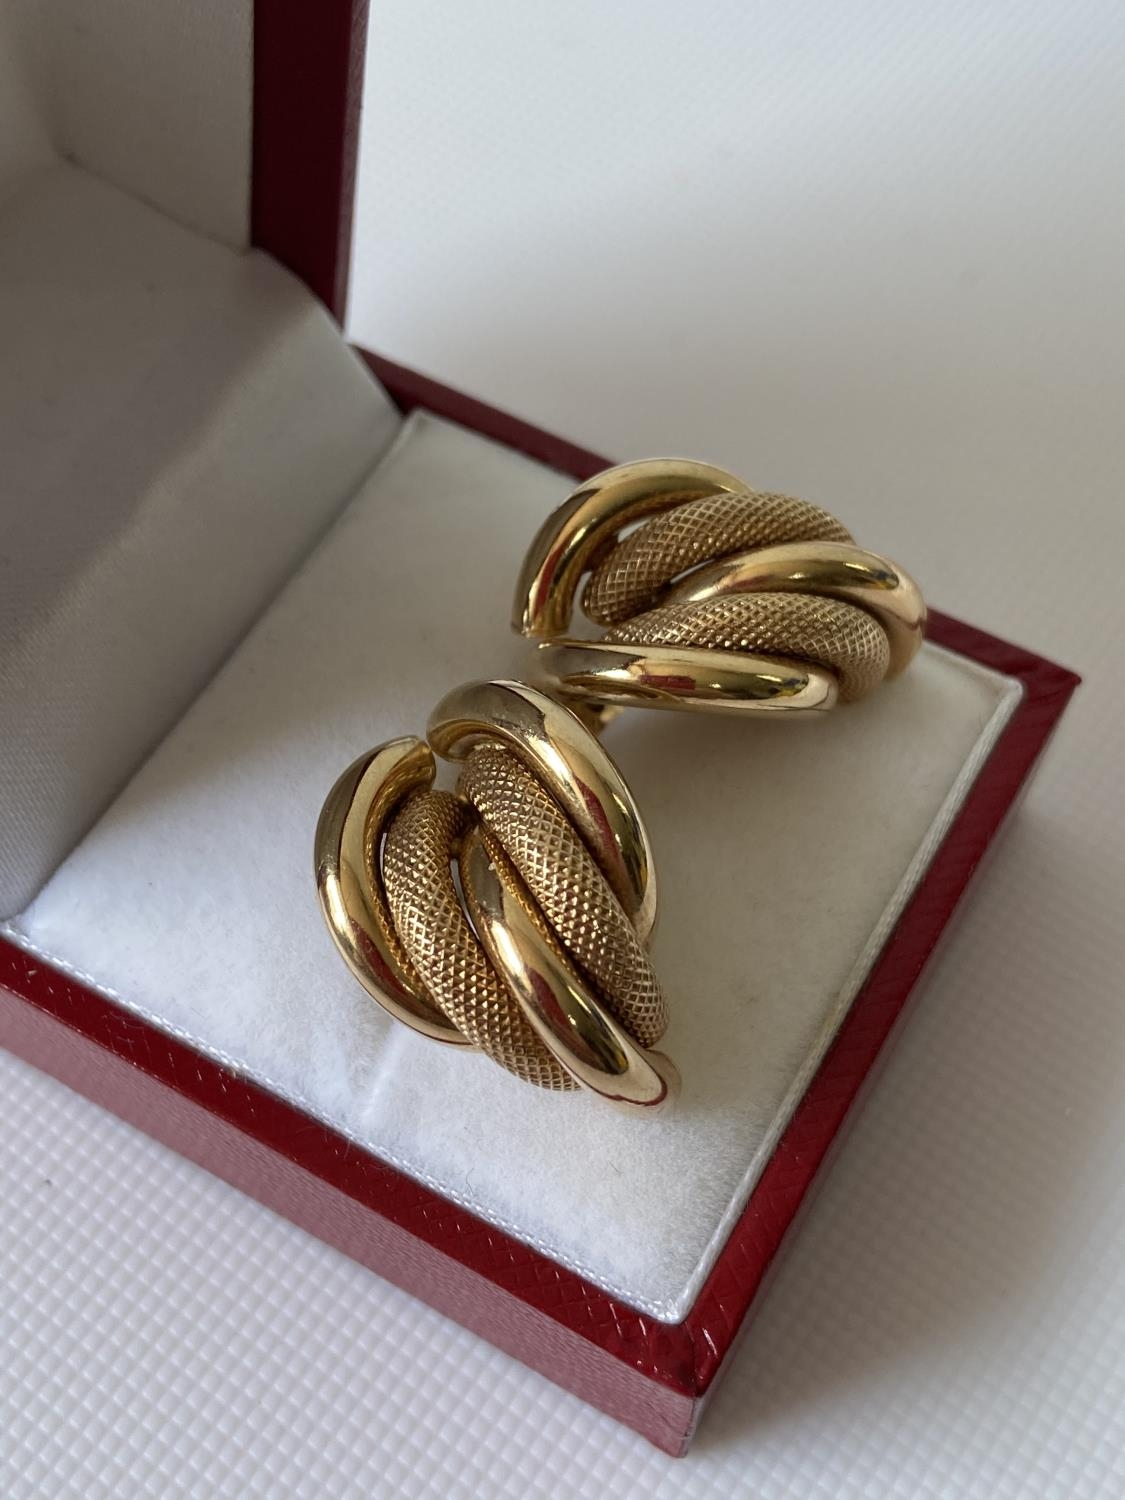 A pair of 9ct gold earrings [3.9g] - Image 3 of 6